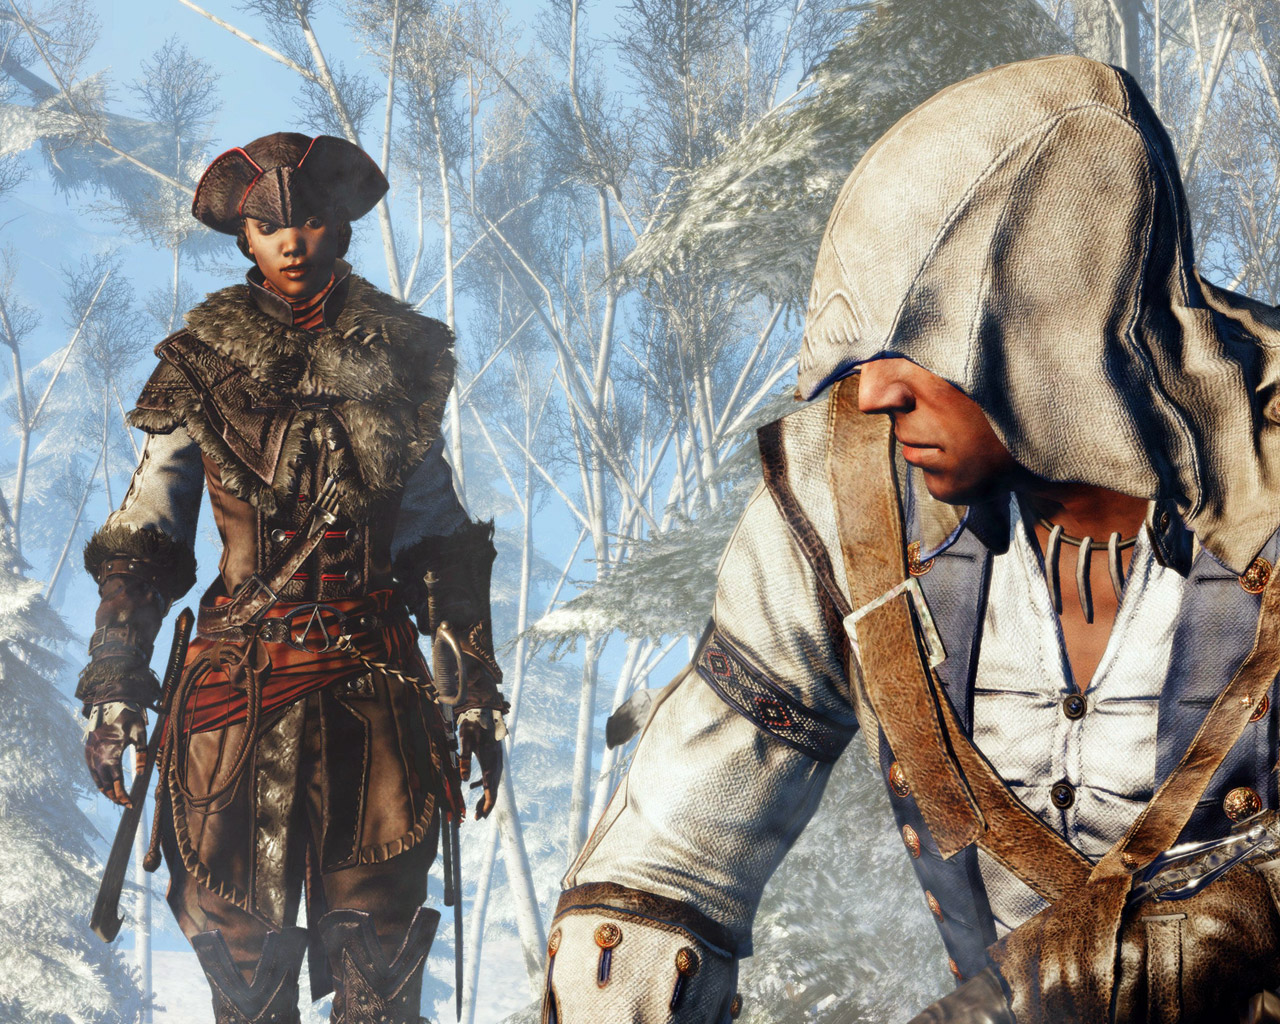 Assassin's Creed III: Liberation Wallpaper in 1280x1024